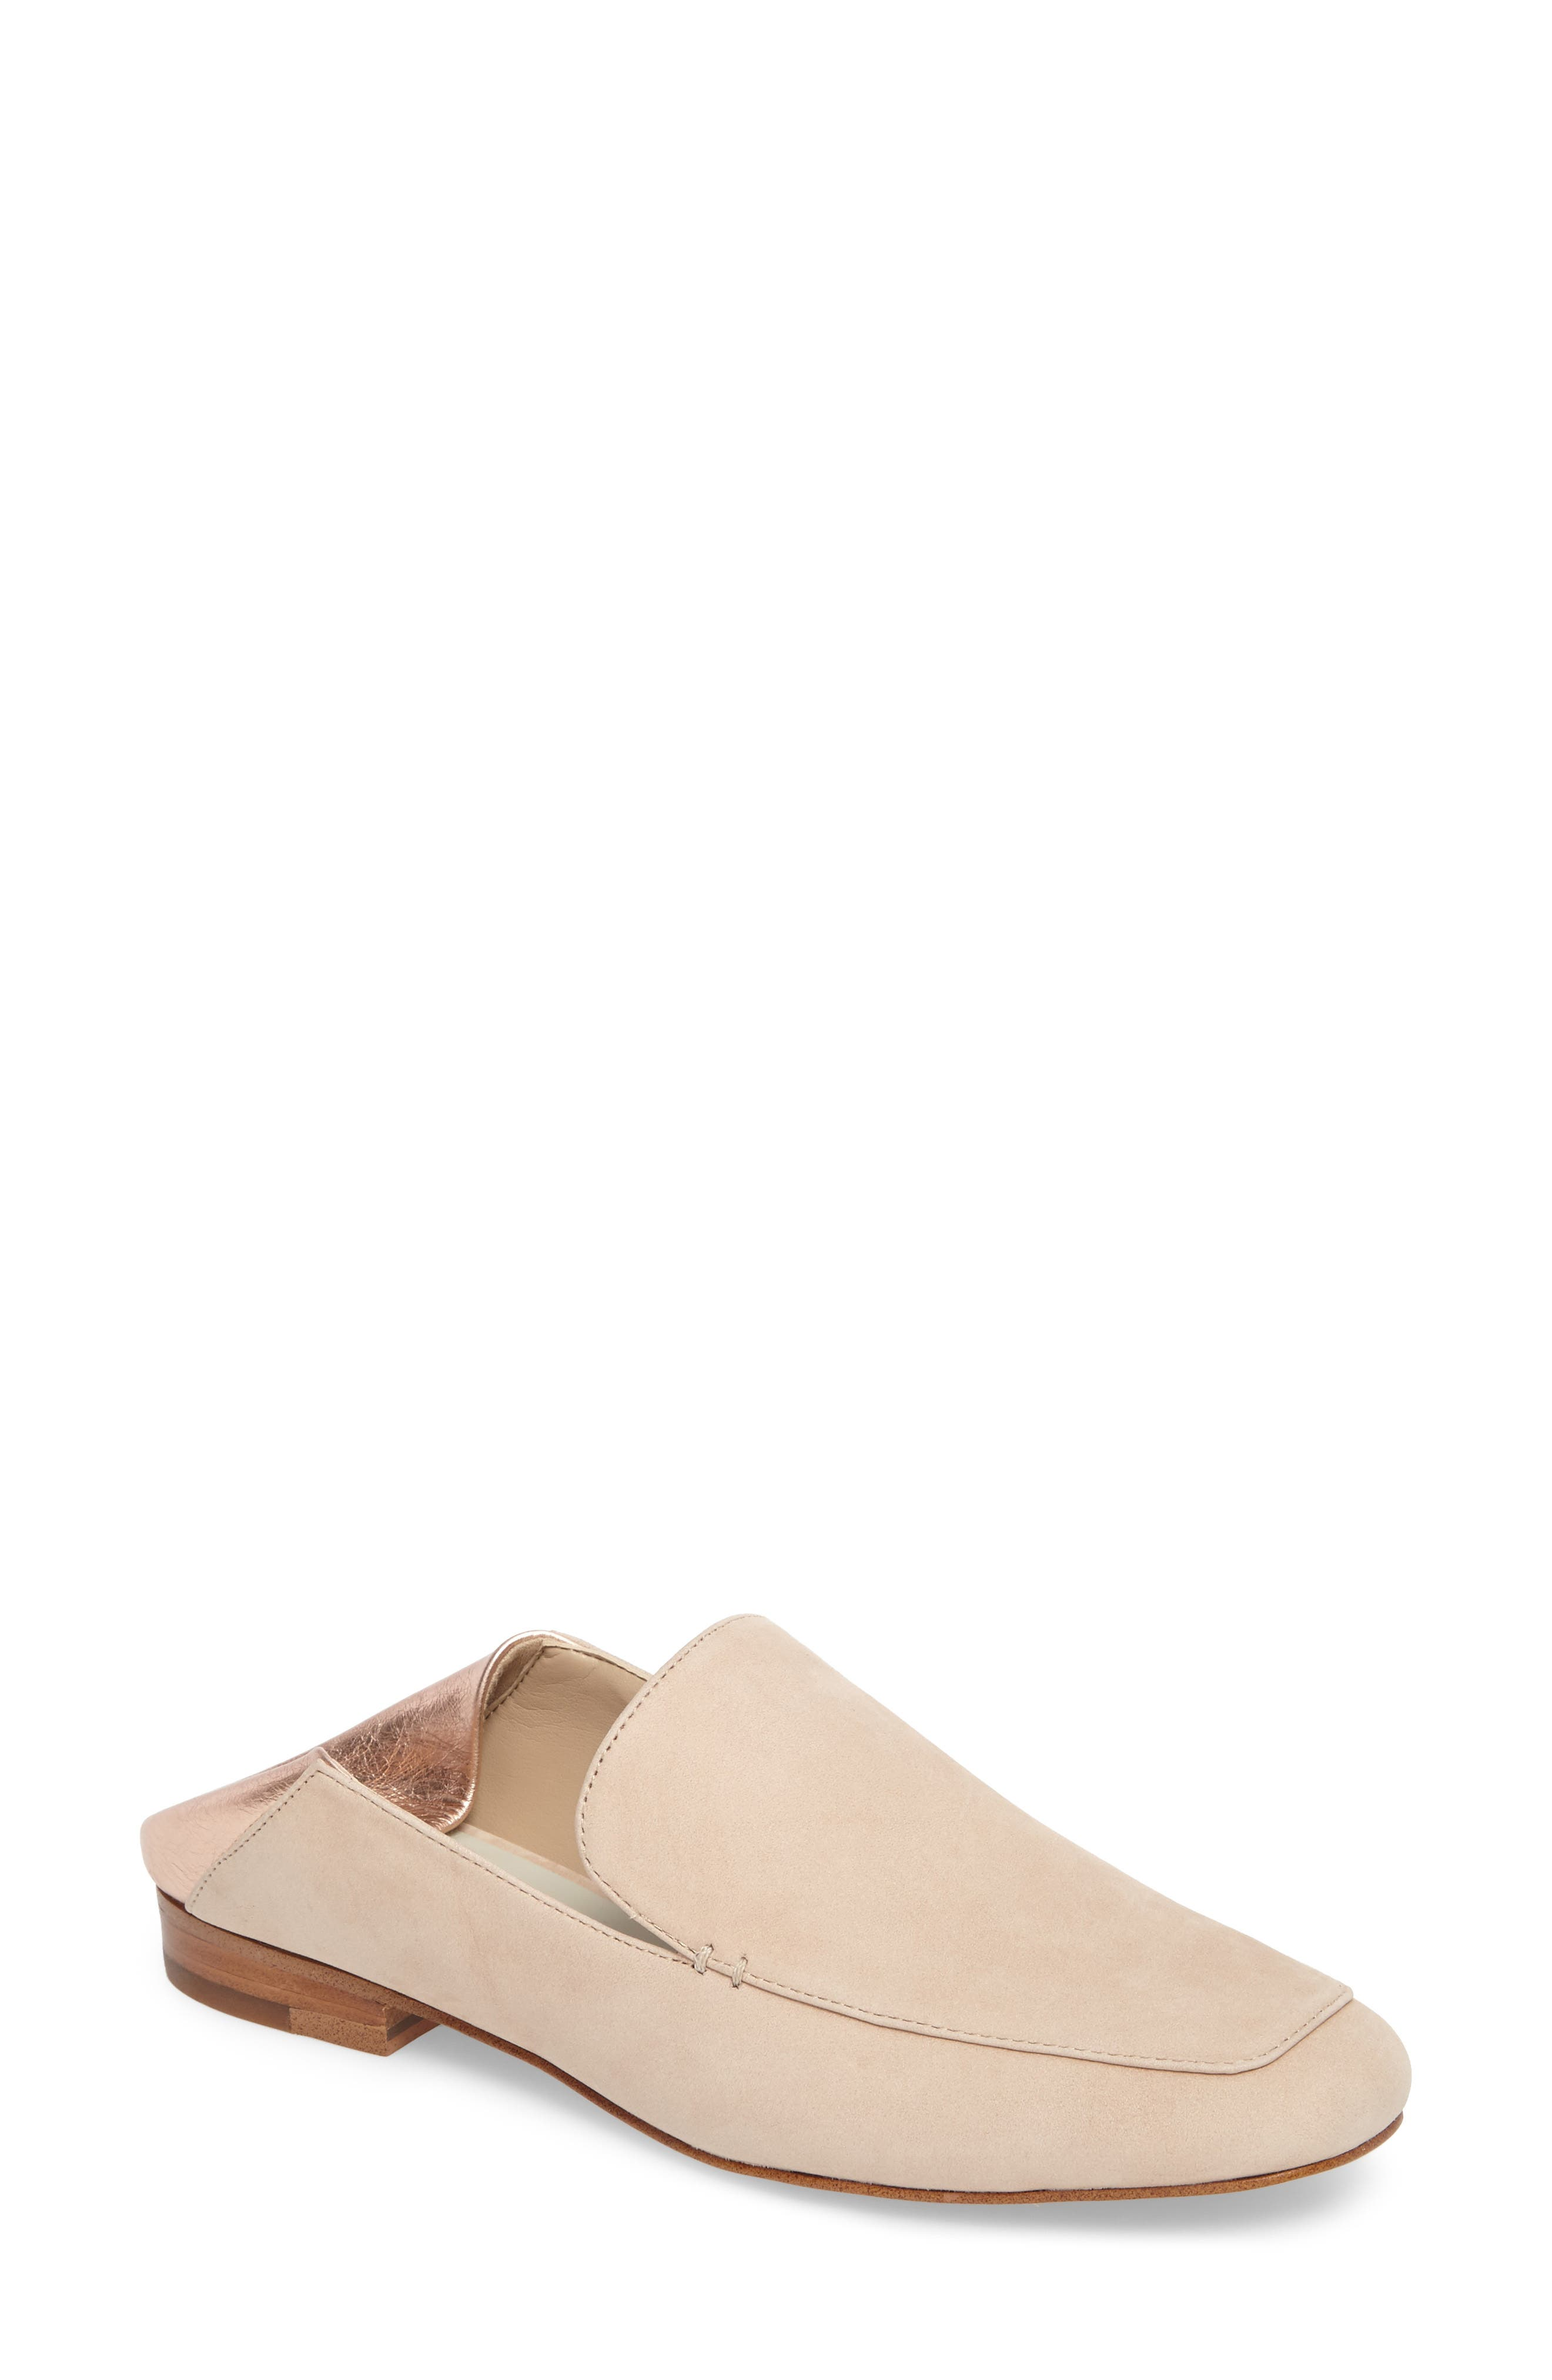 Faun Drop Heel Loafer,                         Main,                         color, Cipria Leather